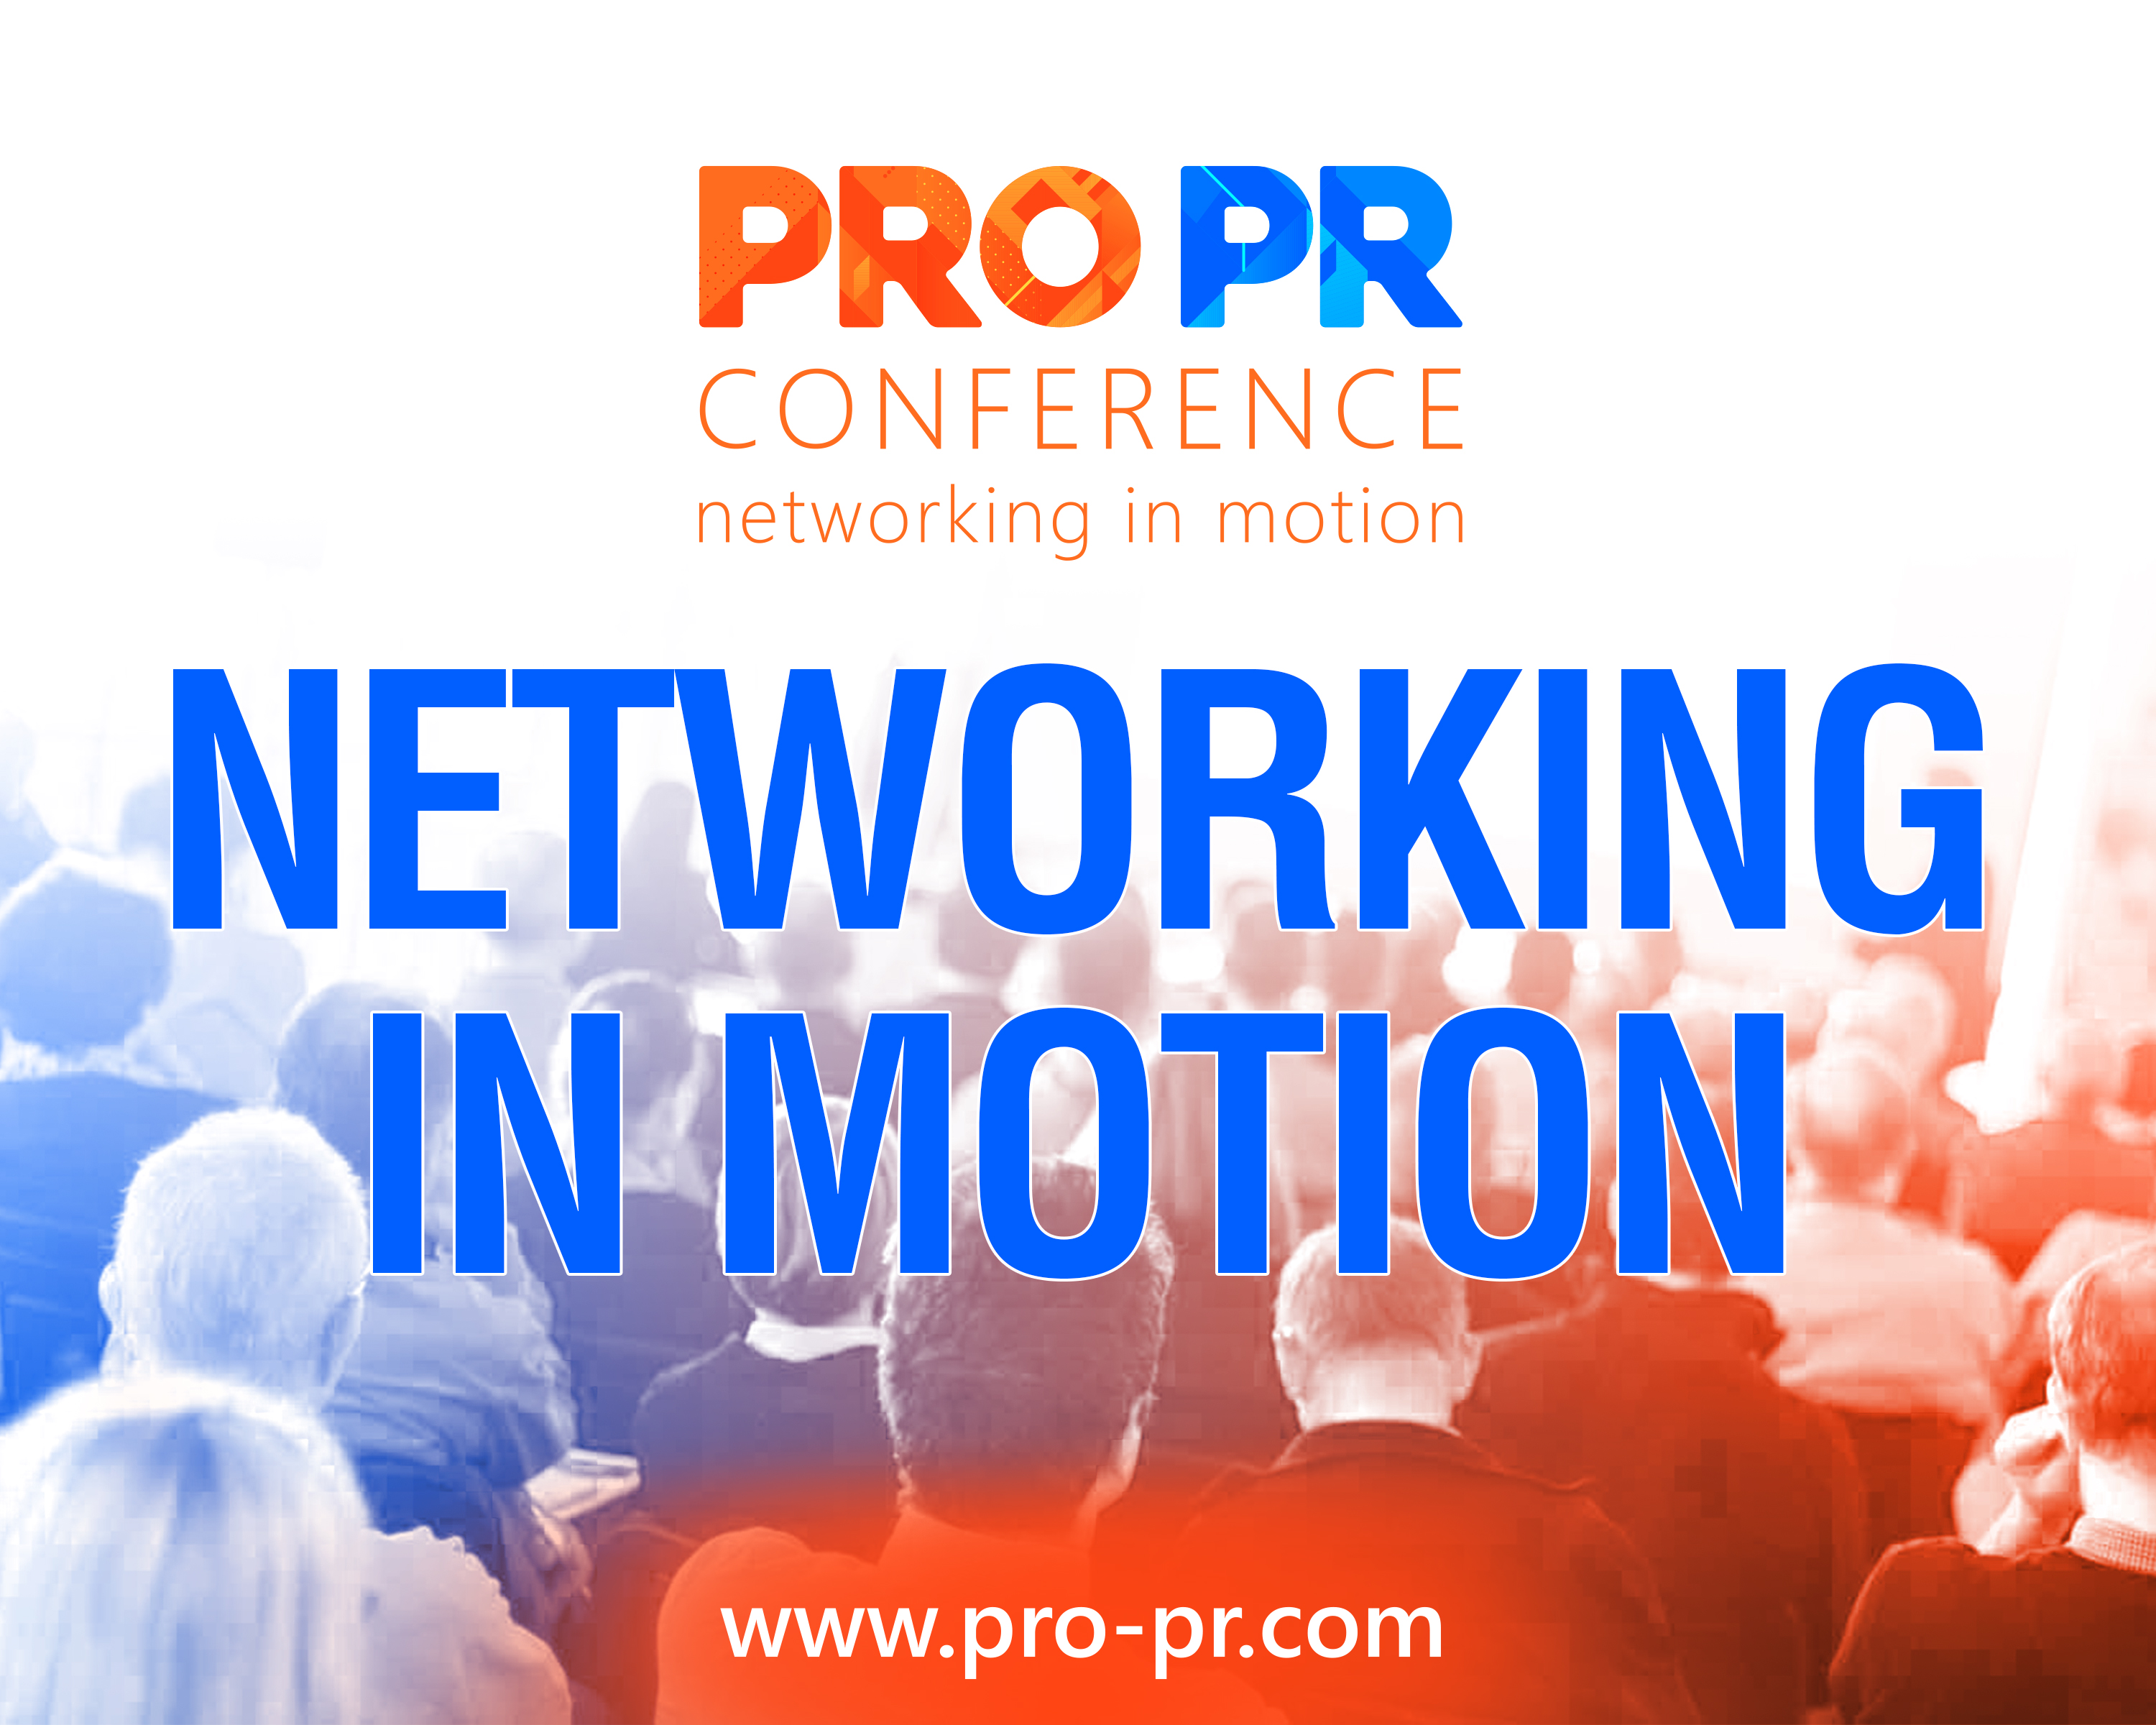 Networking in motion